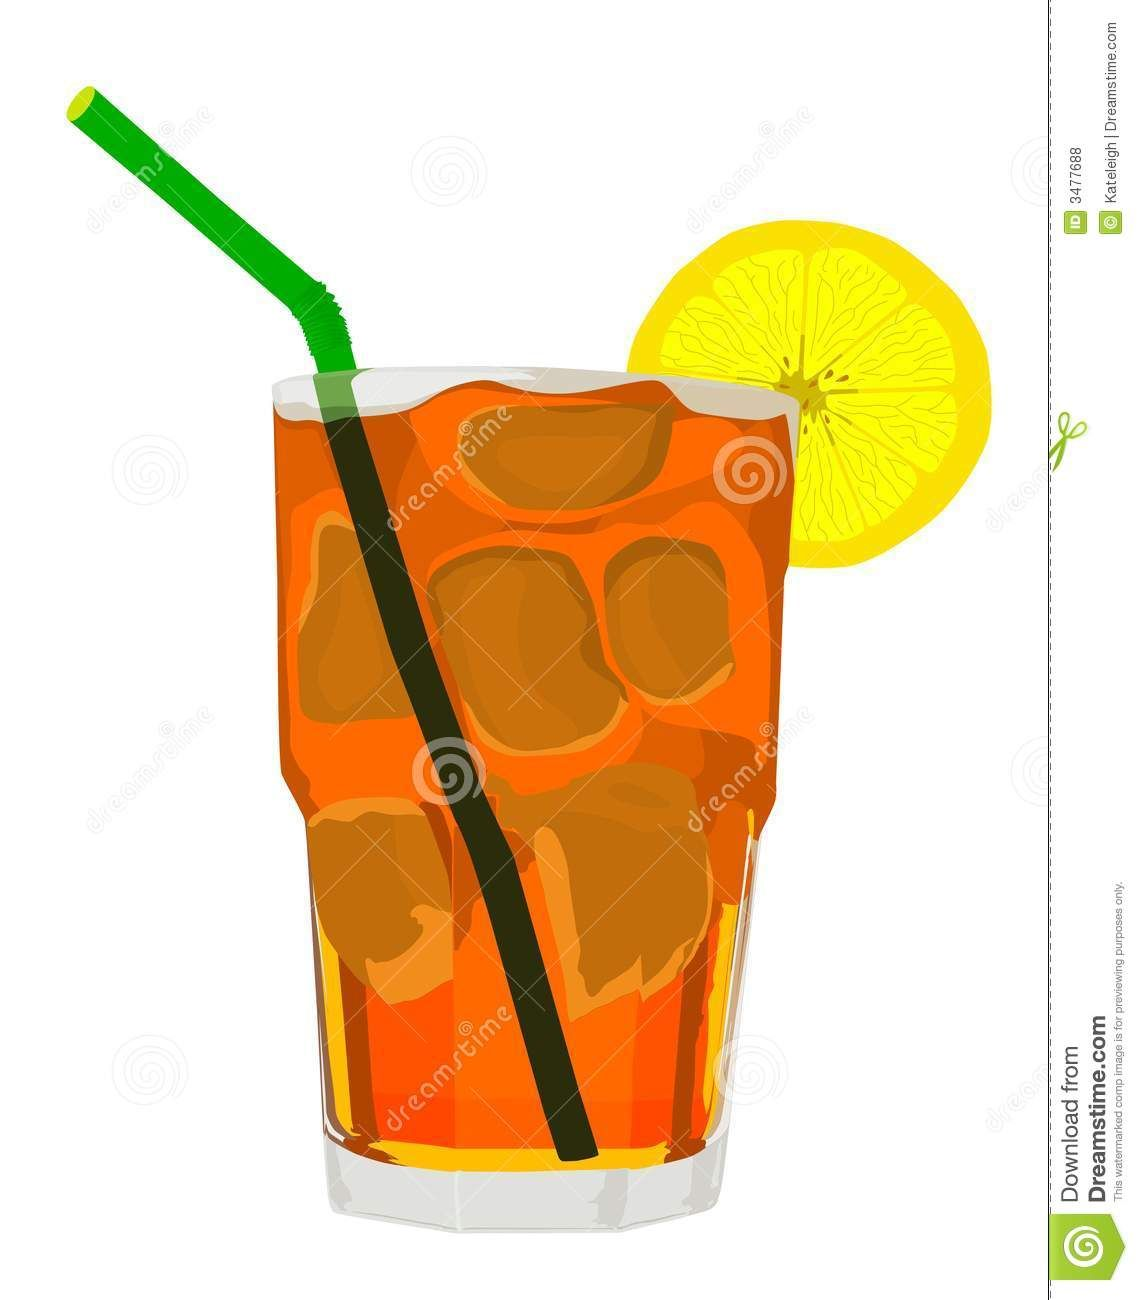 Iced tea clipart picture library library cartoon iced tea clipart   Lemon   Lemon, Tea, Iced tea picture library library